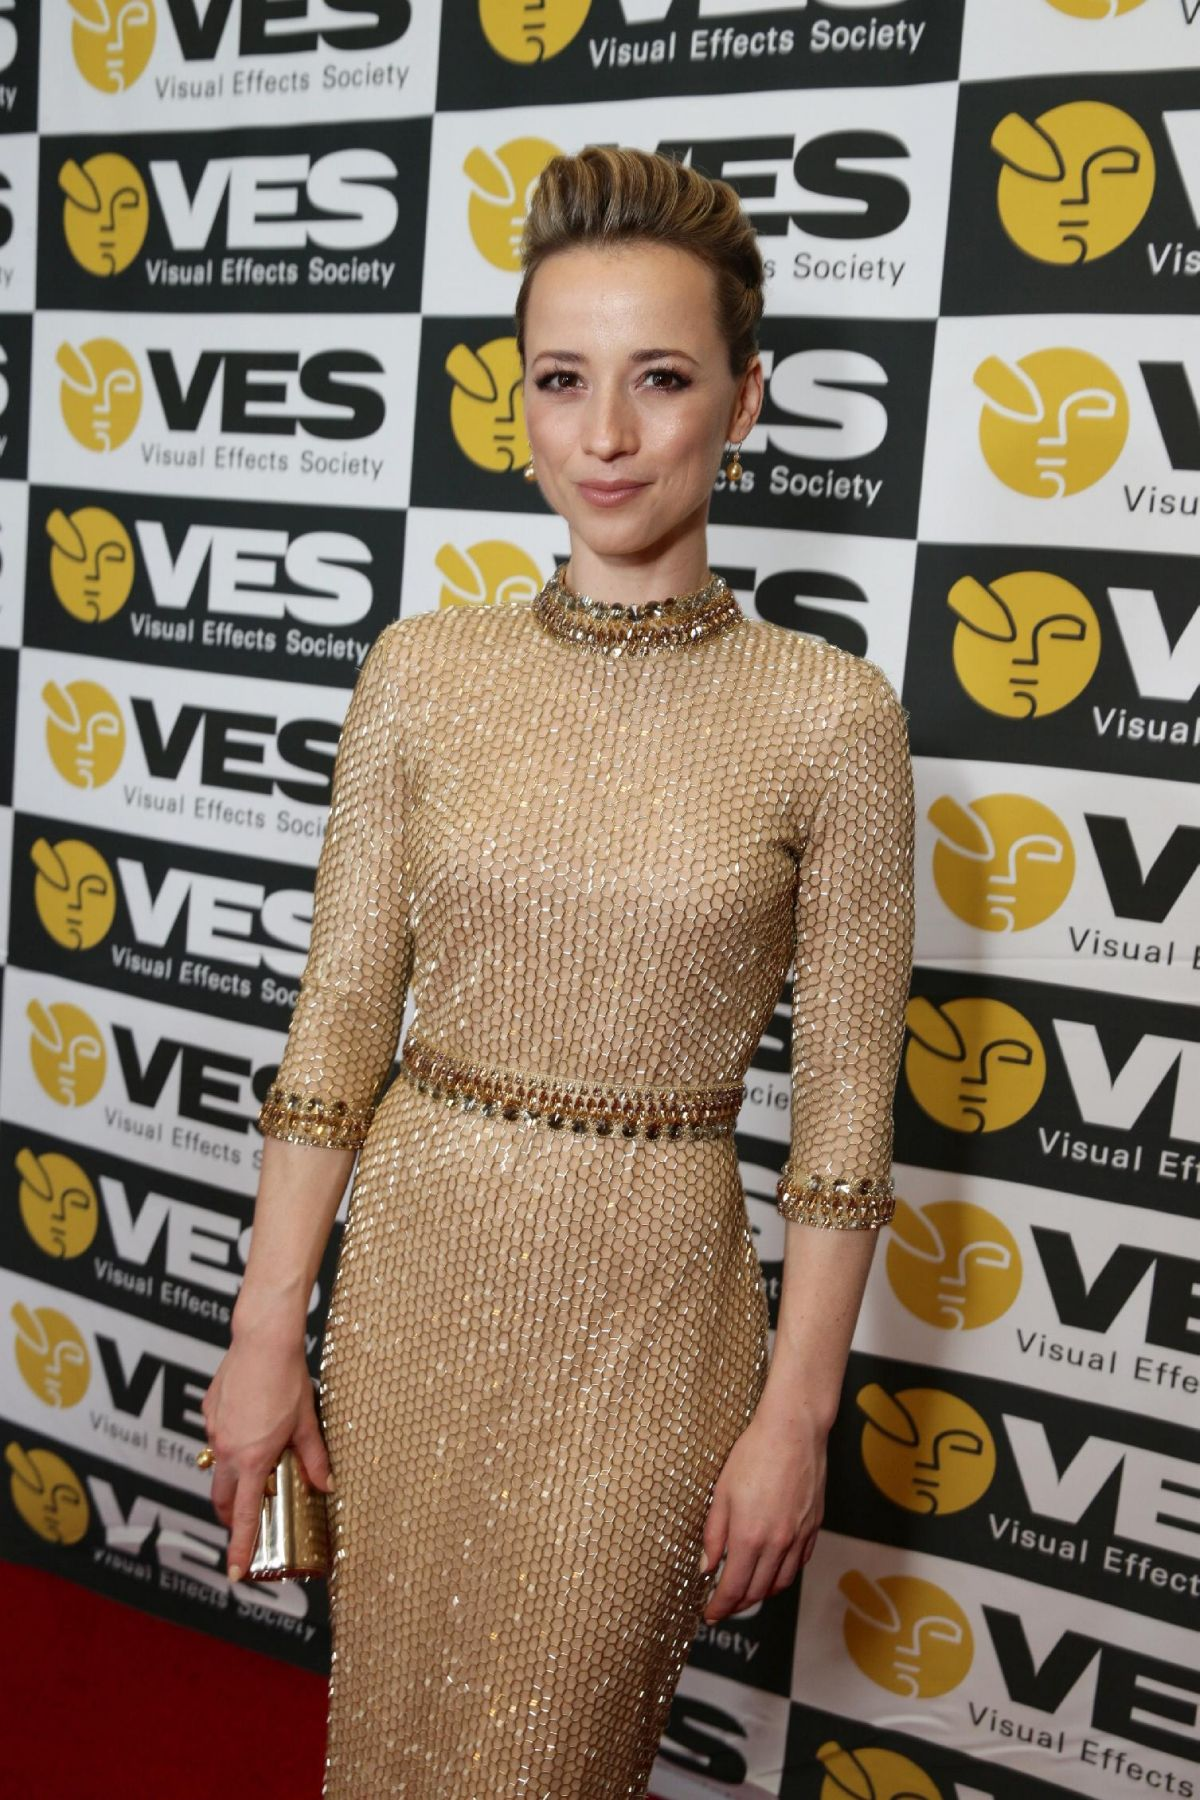 KARINE VANASSE at 2015 Ves Awards in Beverly Hills